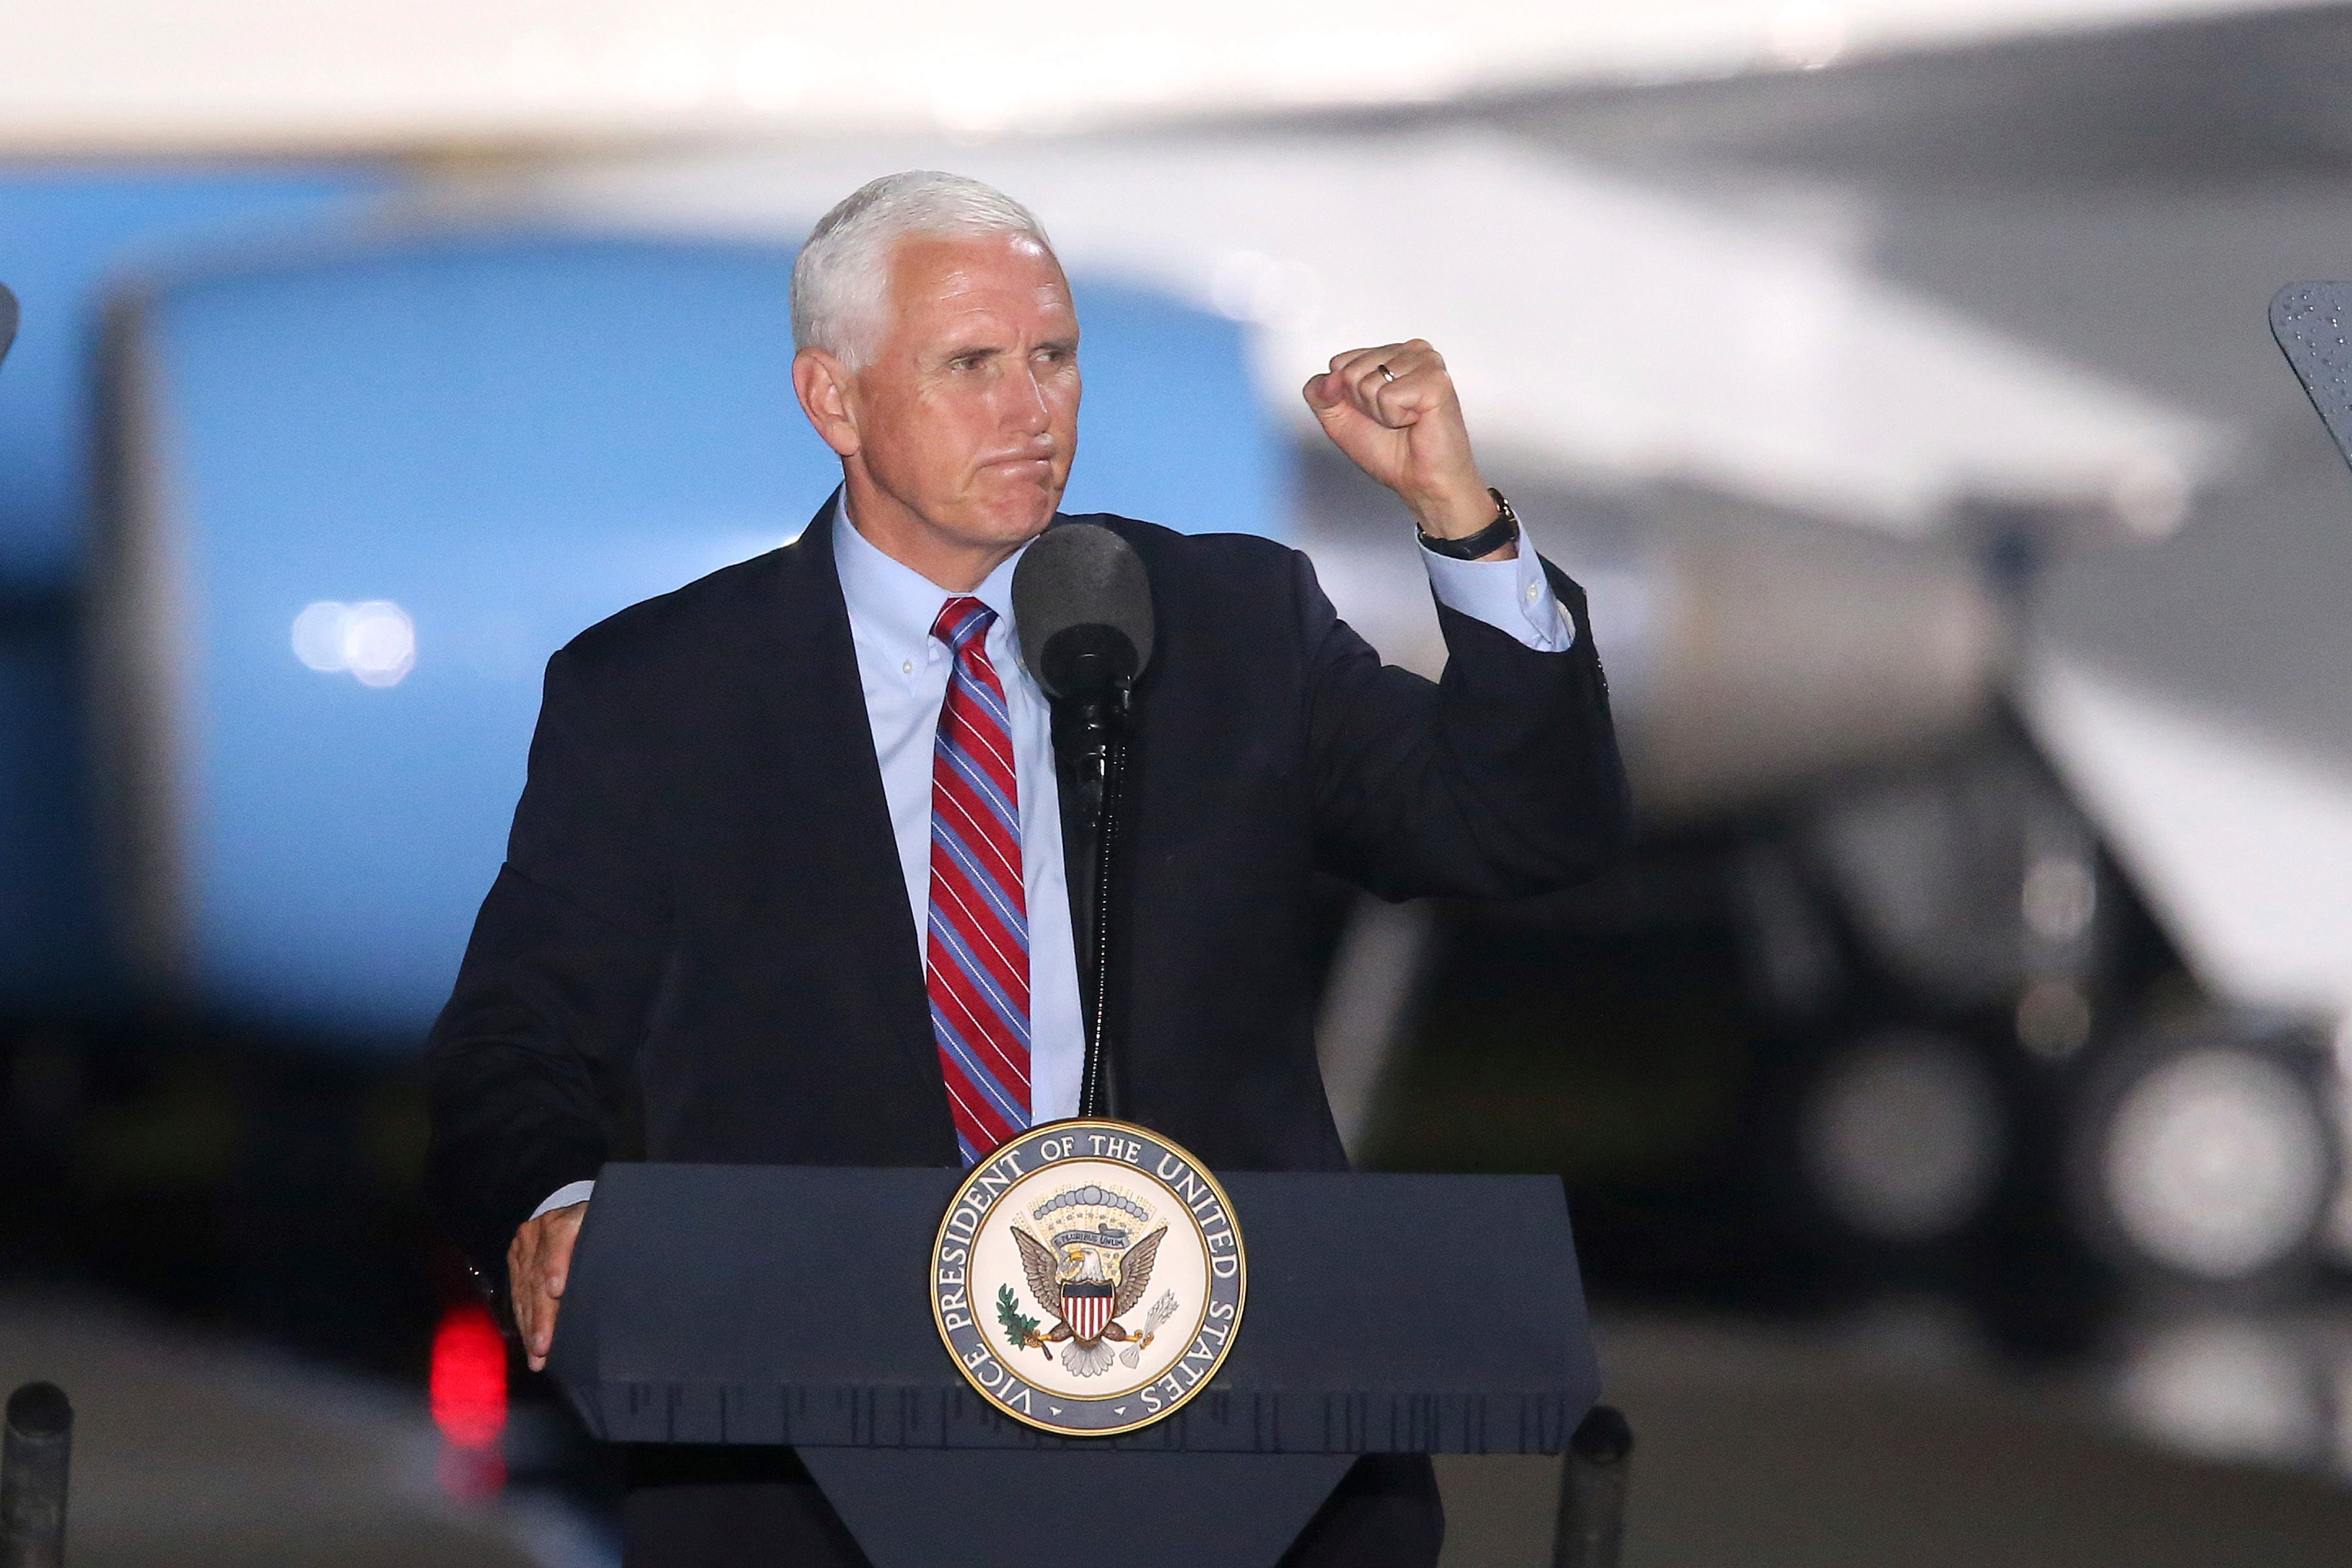 He s not just campaigning, he s working : Pence will still campaign, despite aide s COVID-19 case